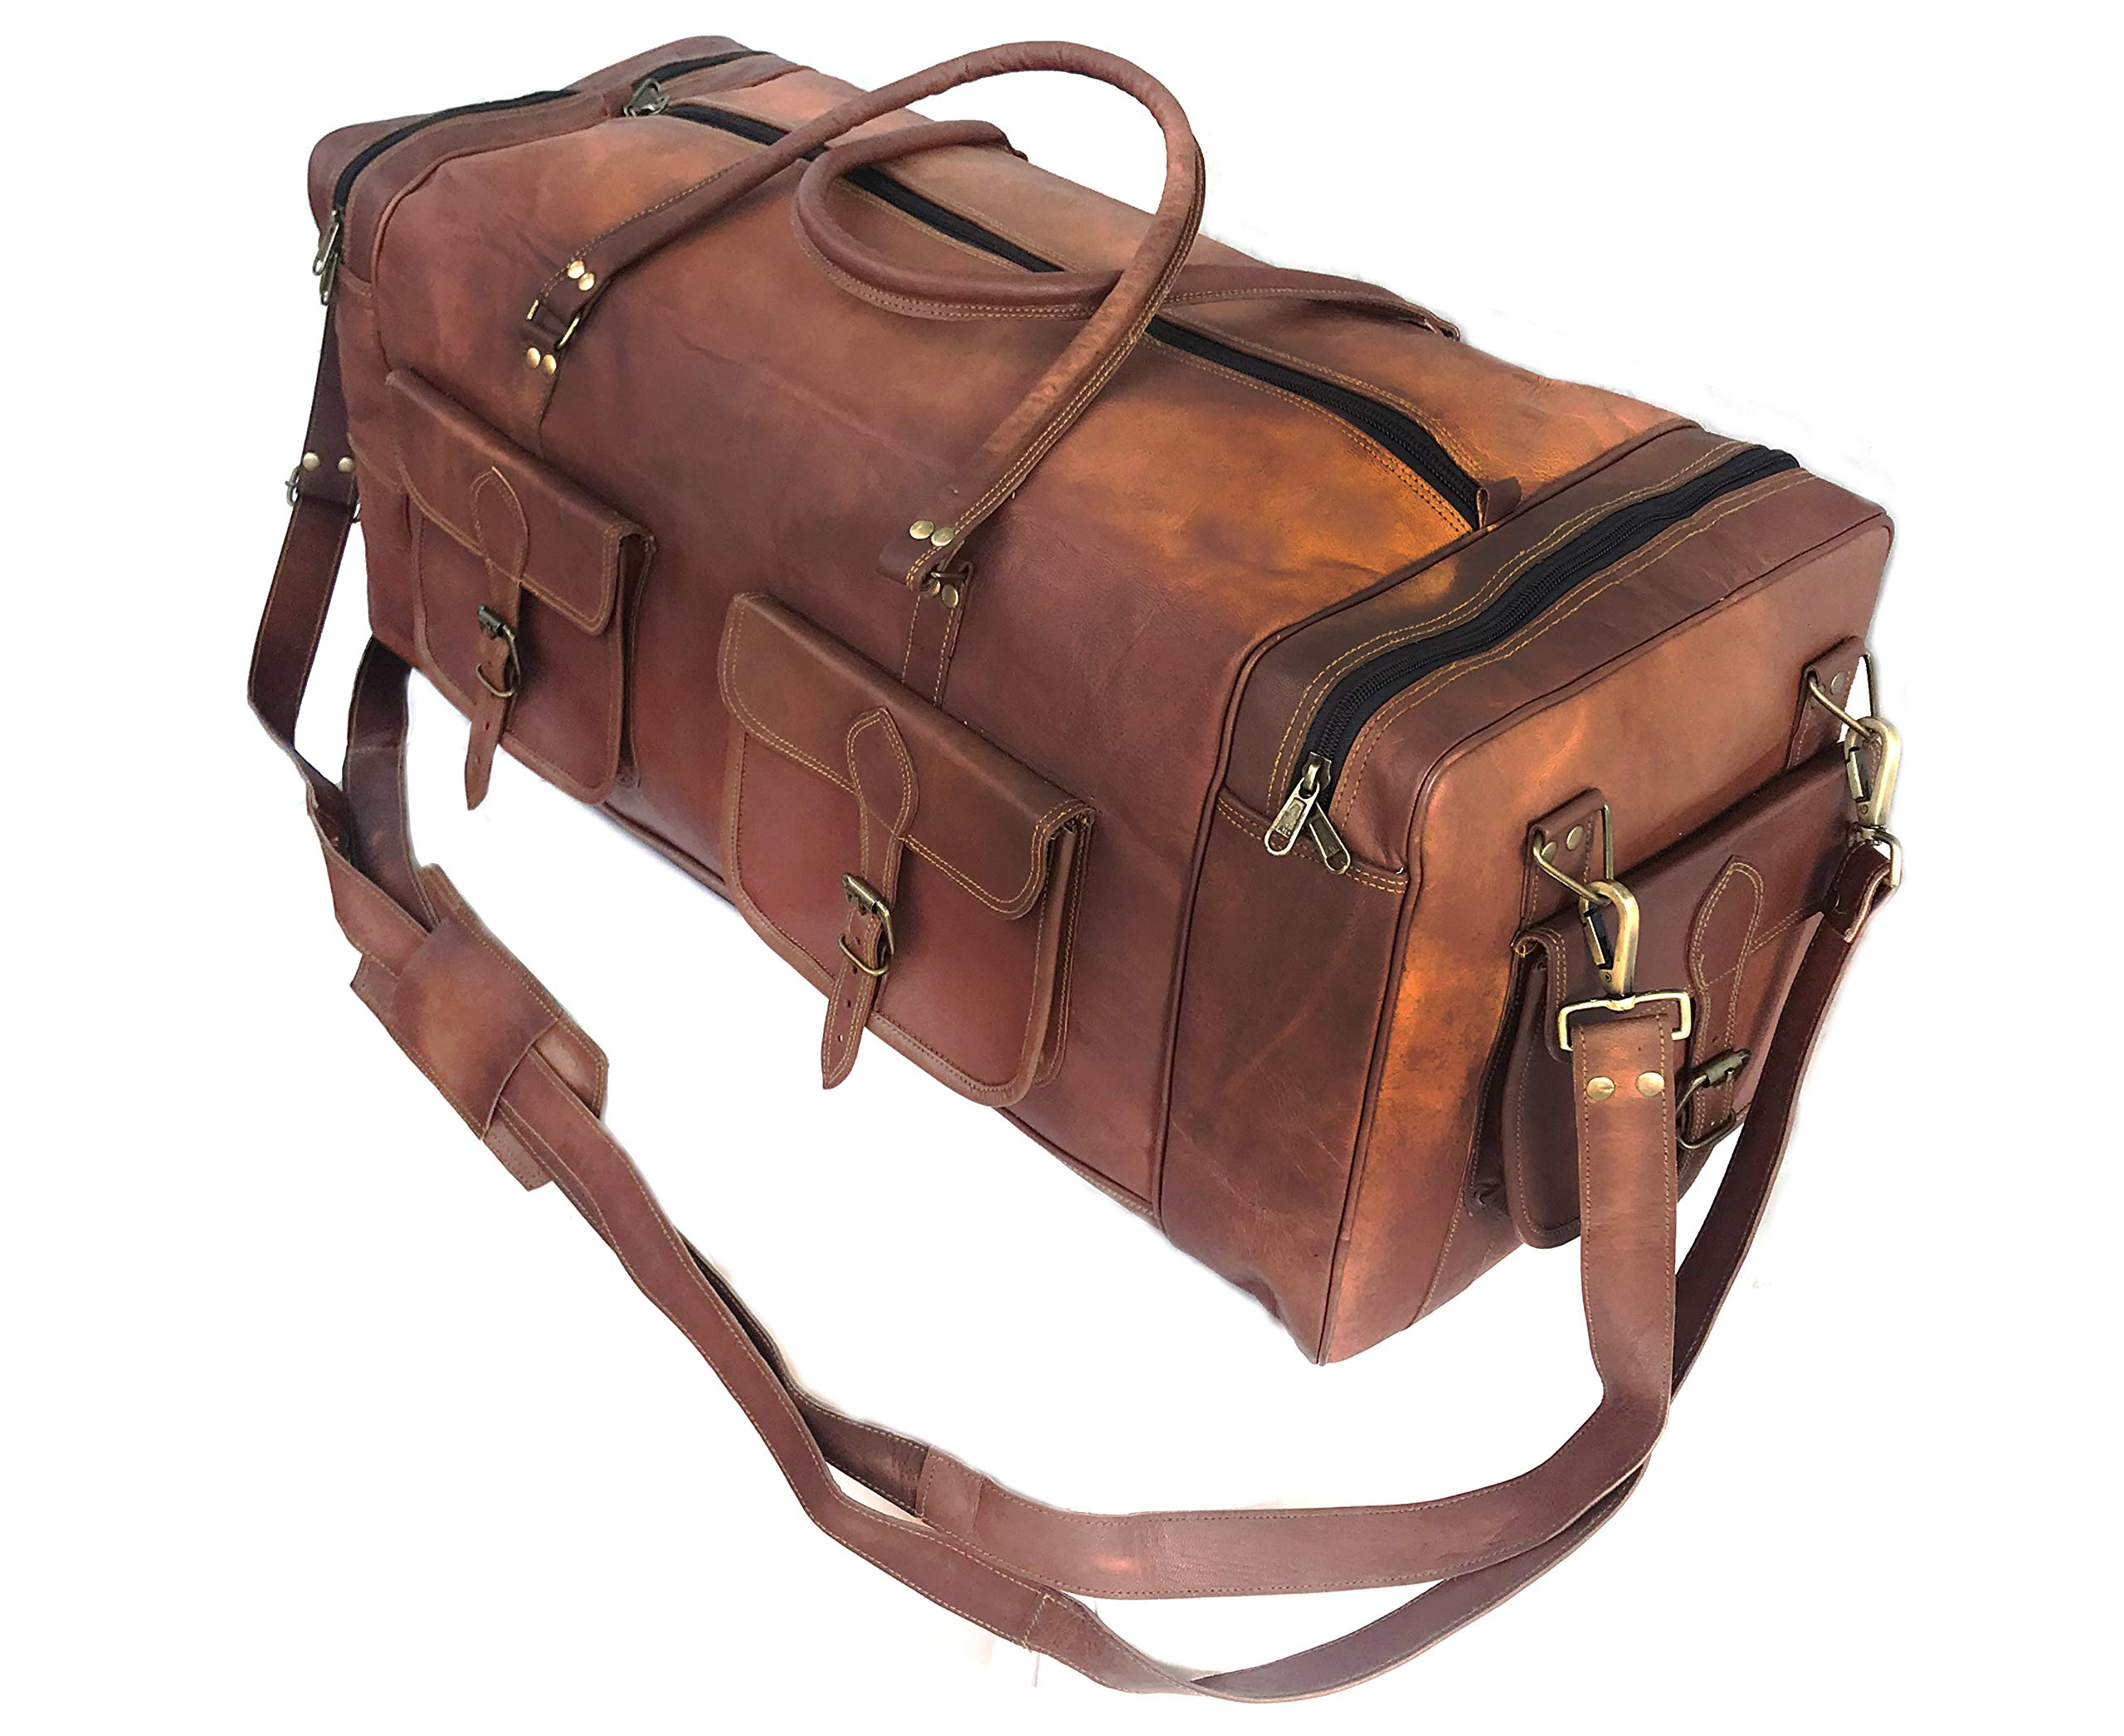 KK's 30 Inch Real Goat Leather Large Handmade Travel Luggage Bags in Square Big bag Carry On by cuero